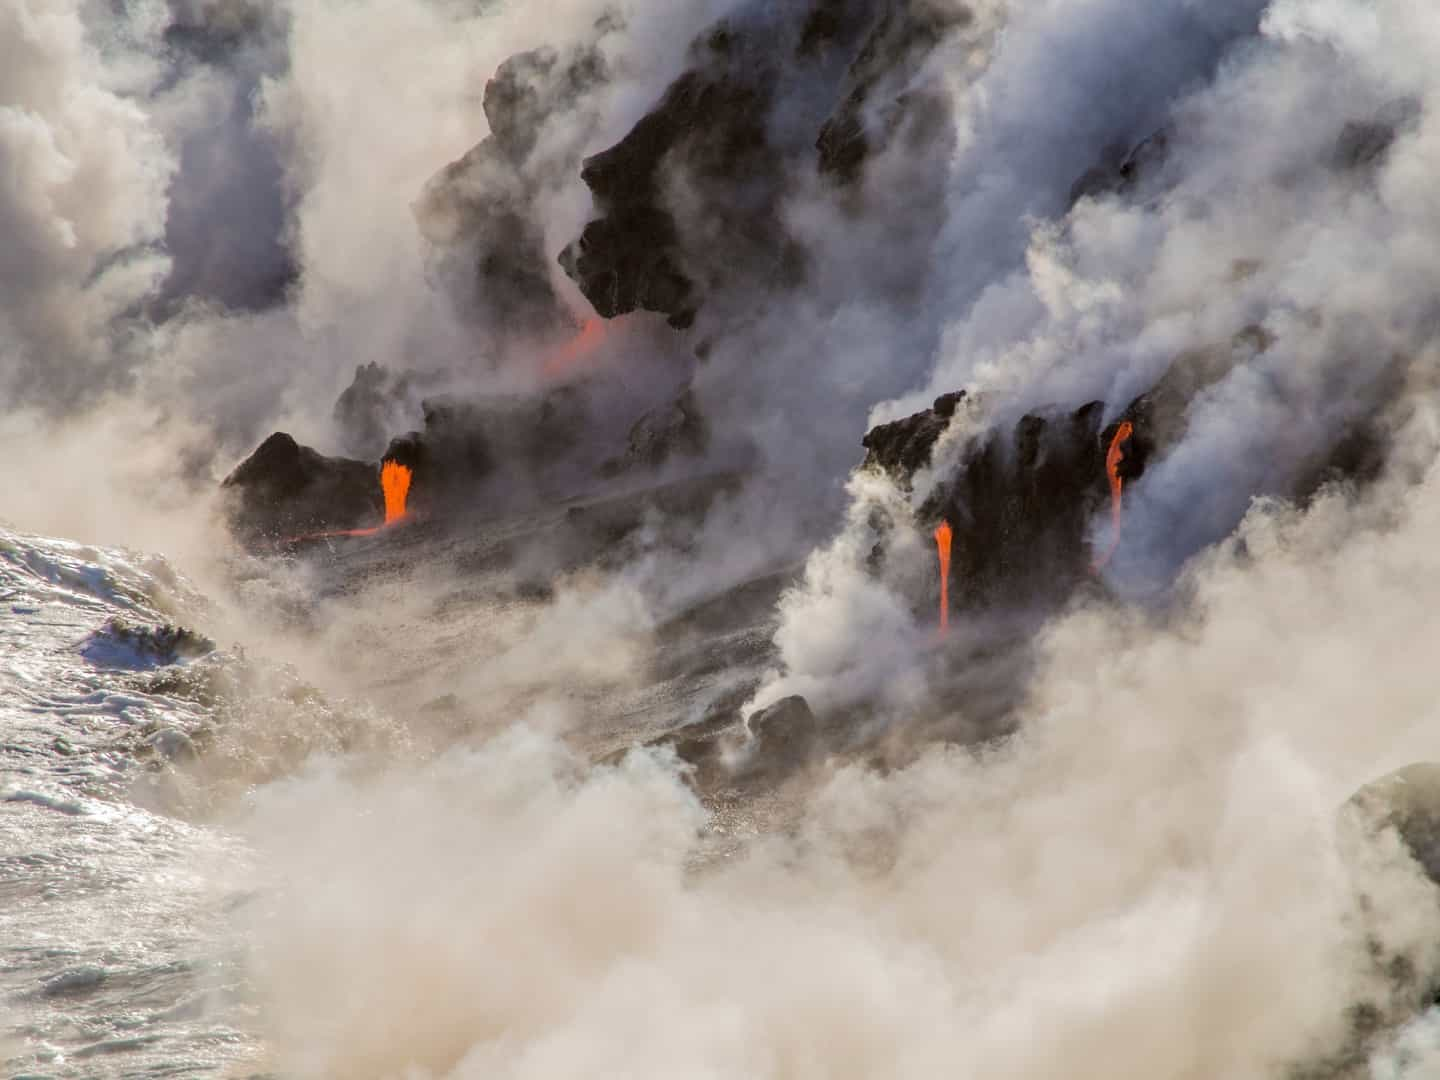 sea-cloud-steam-wave-stone-volcano-157022-pxhere.com_